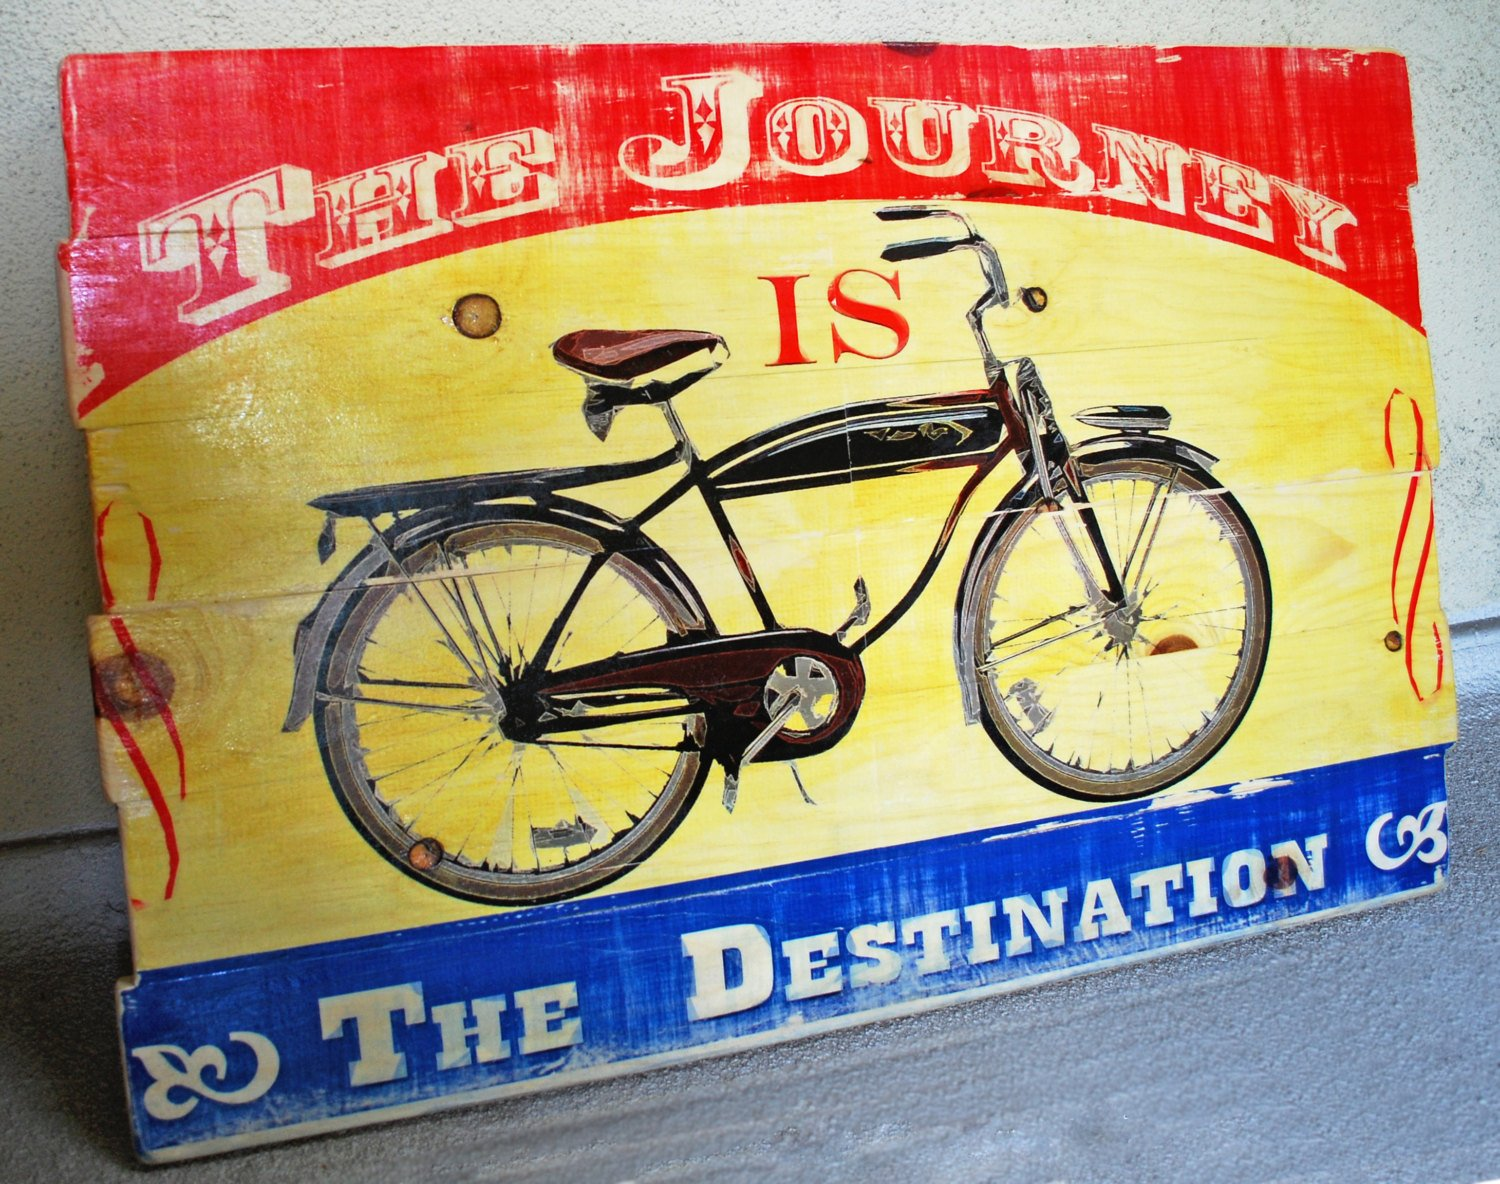 Amazon.com: Vintage Bicycle Wall Art on Solid Wood Boards - The ...